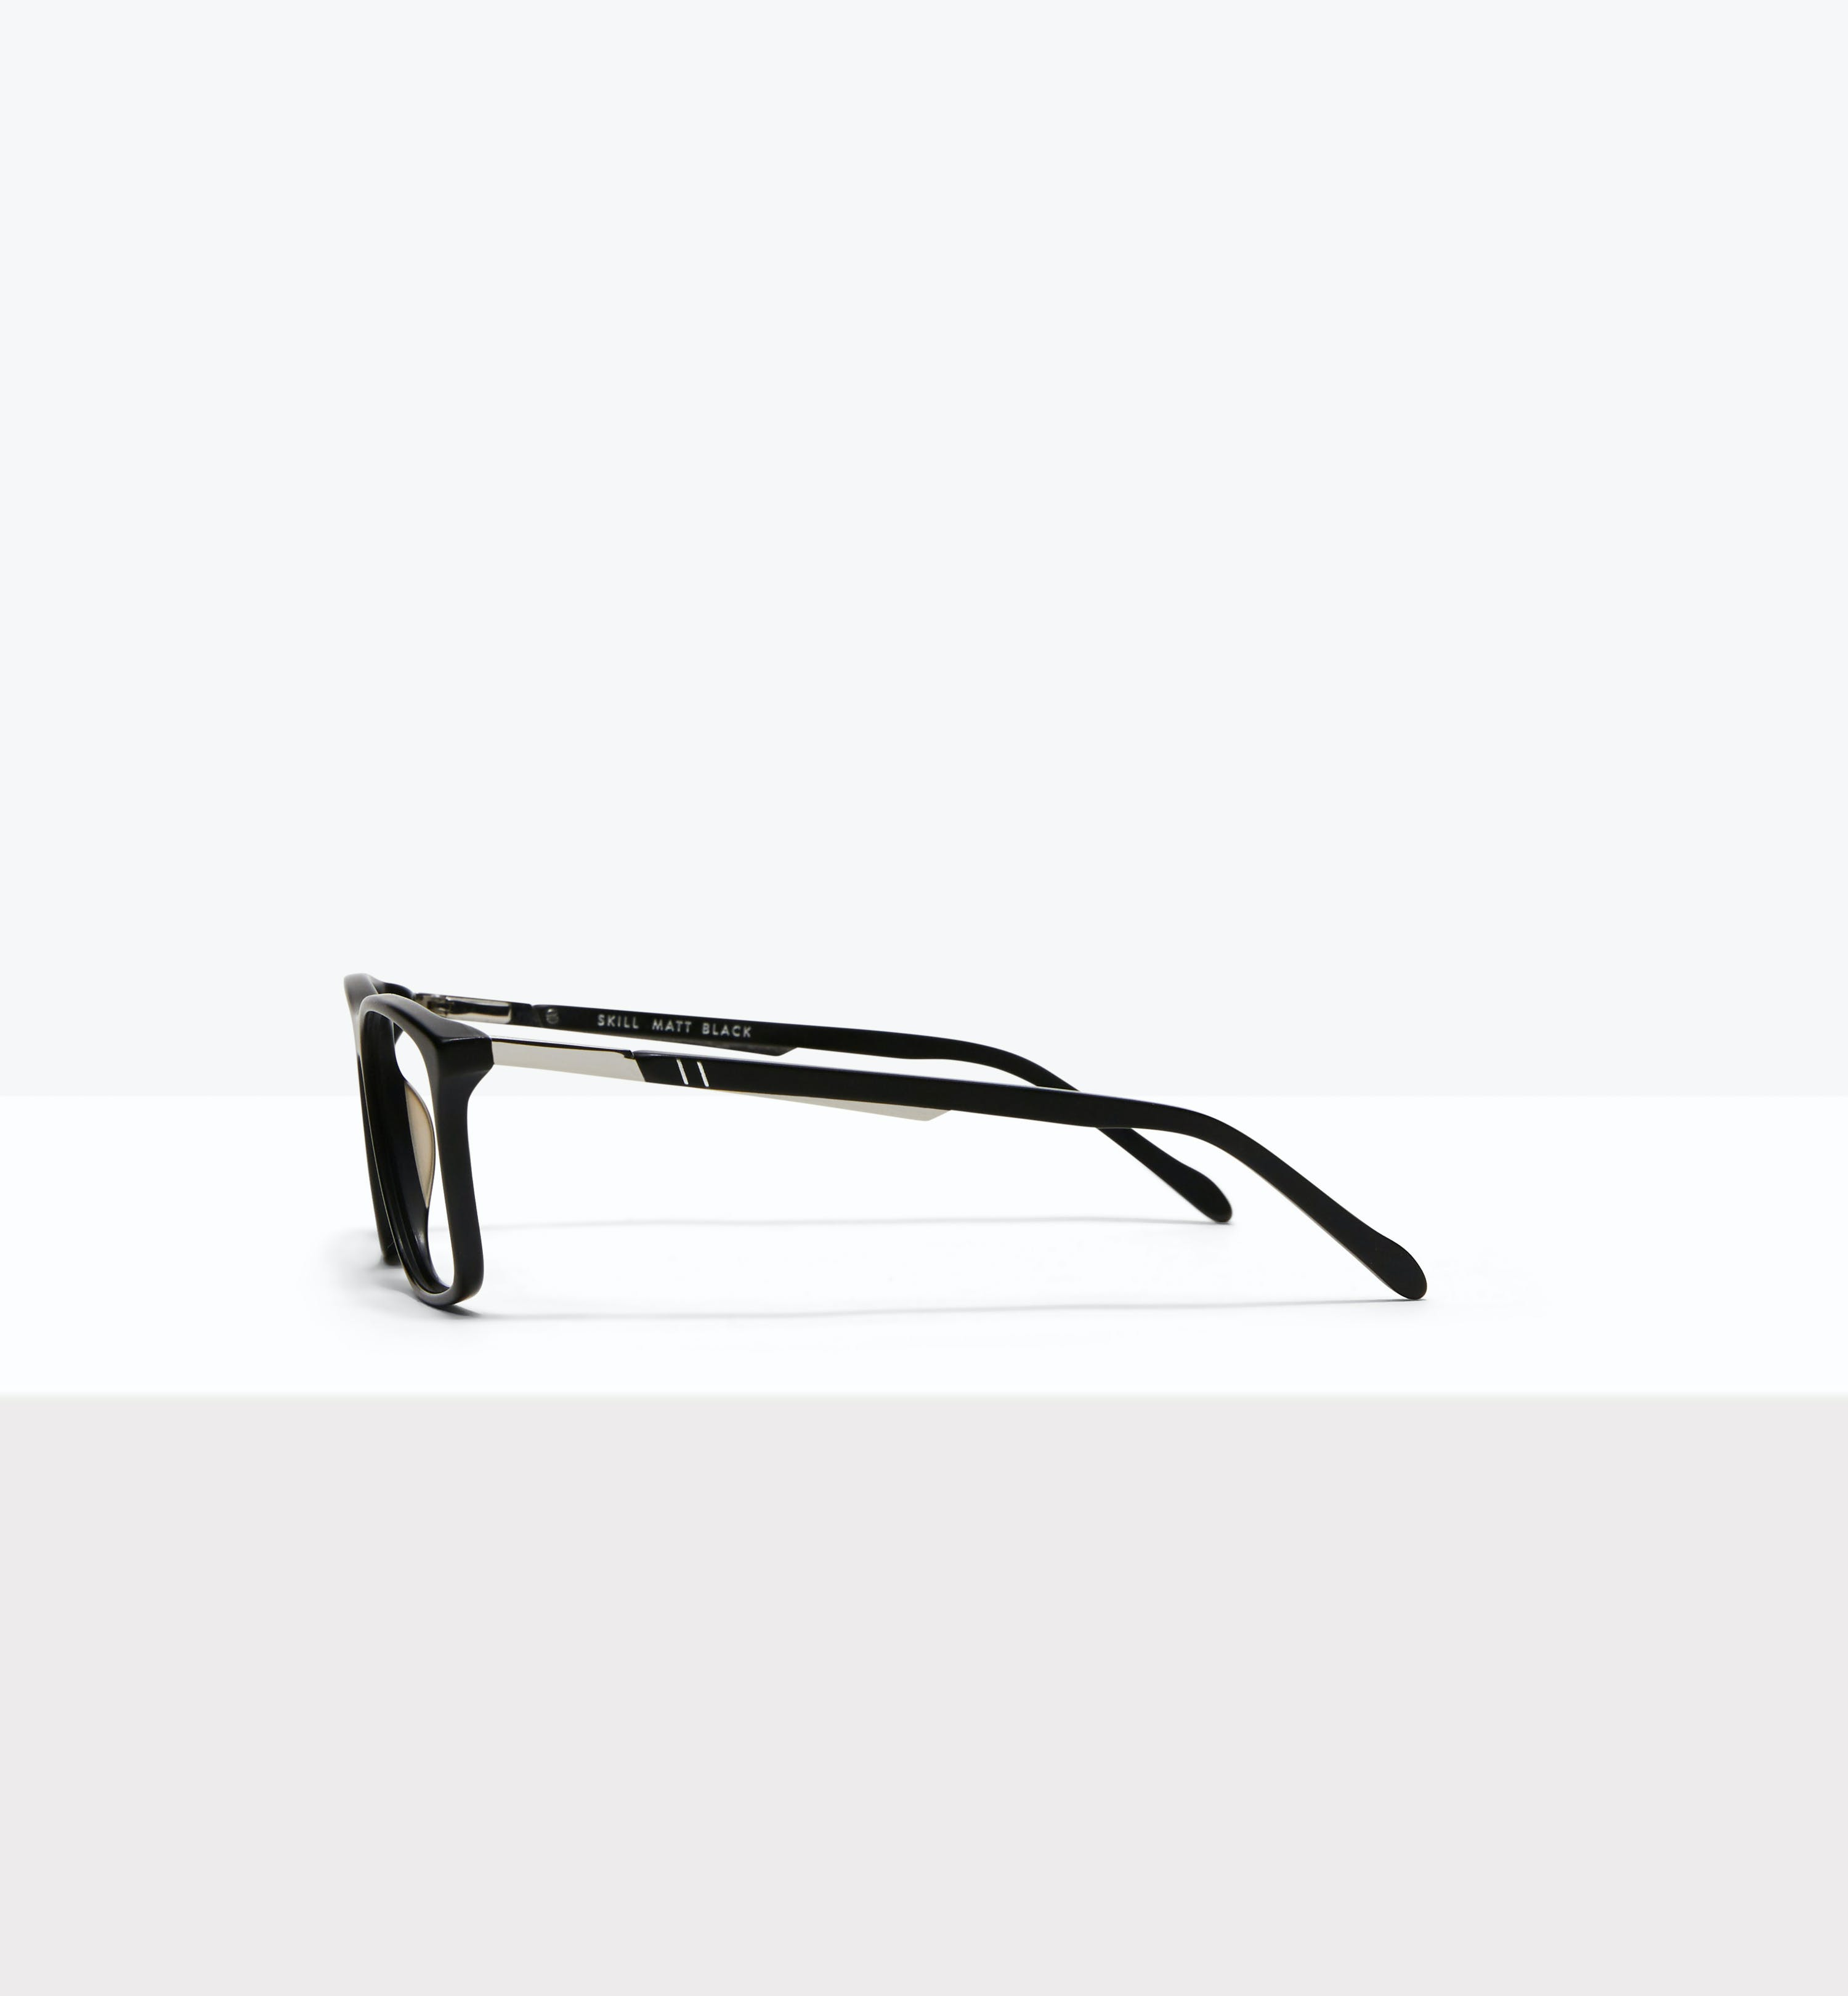 Affordable Fashion Glasses Rectangle Eyeglasses Men Skill Matt Black Side